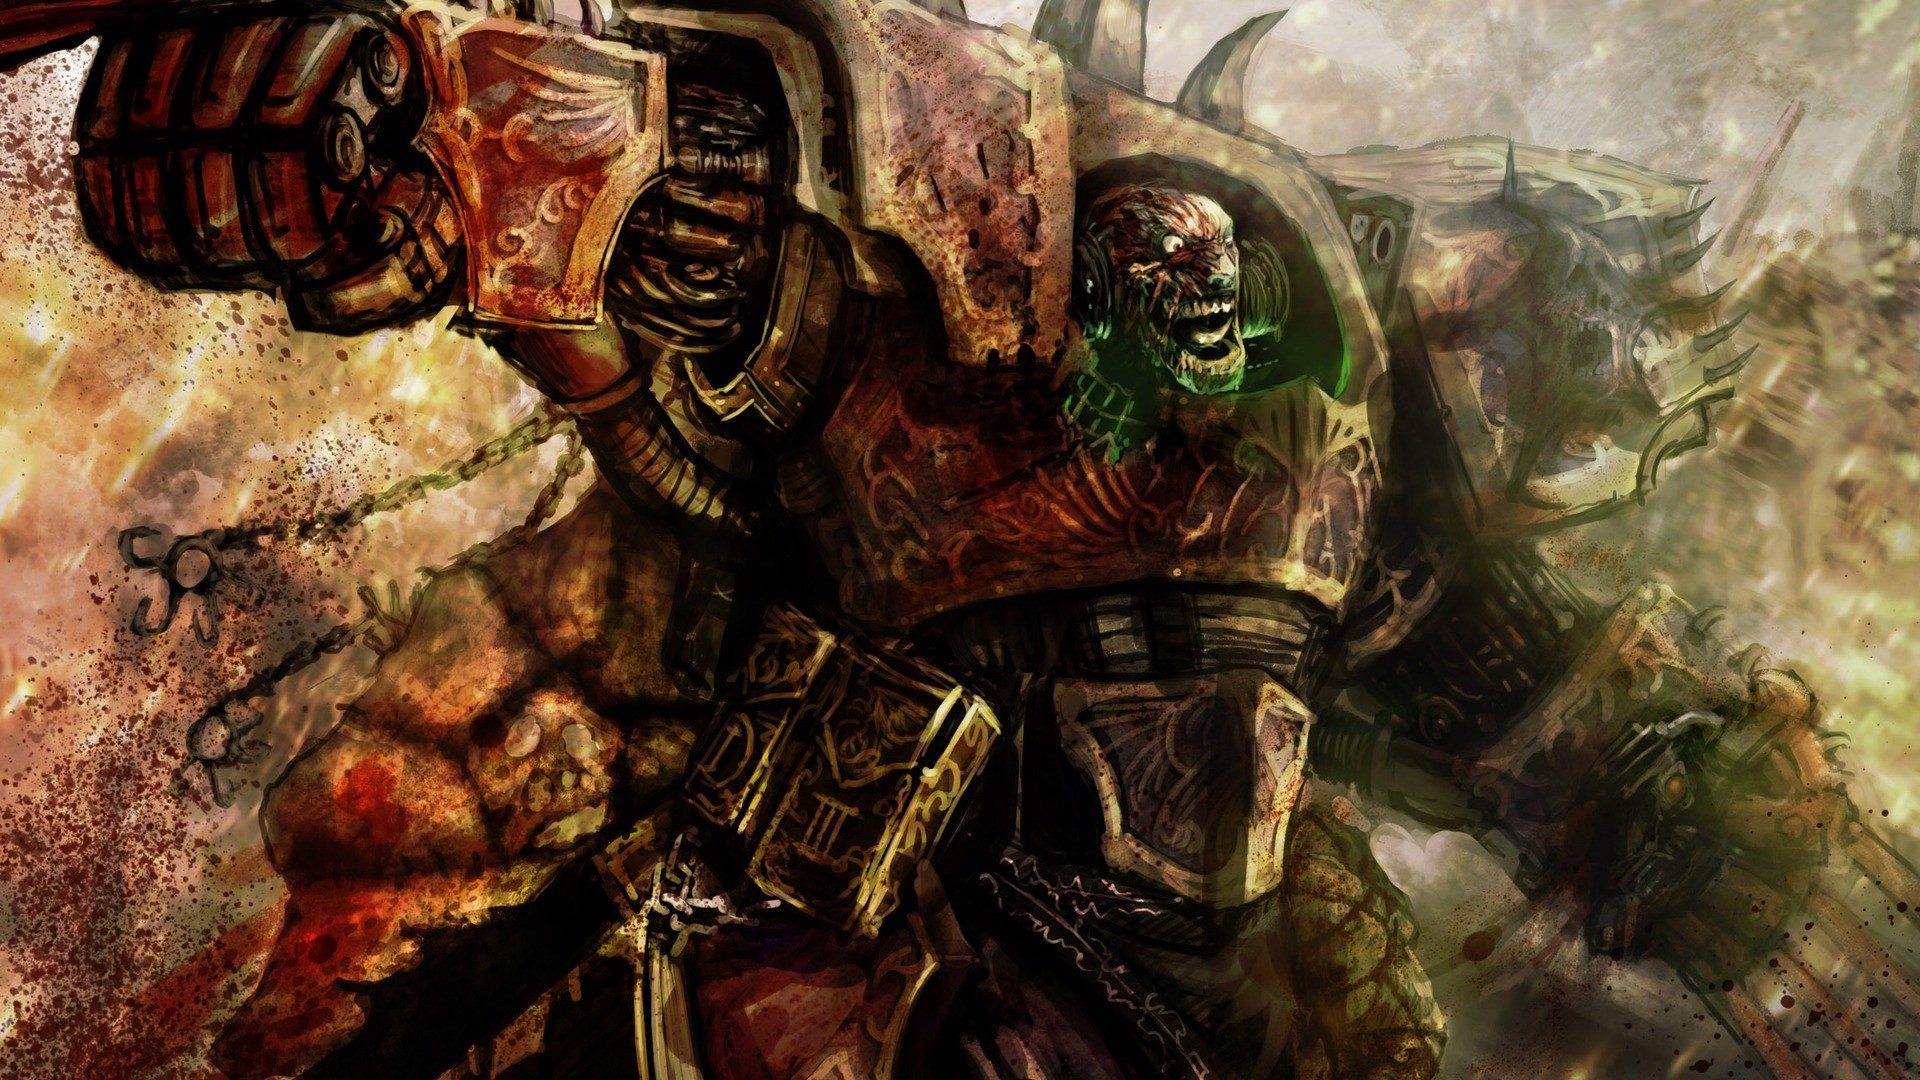 Artwork chaos space marine Warhammer 40k wallpaper 1920x1080 1920x1080